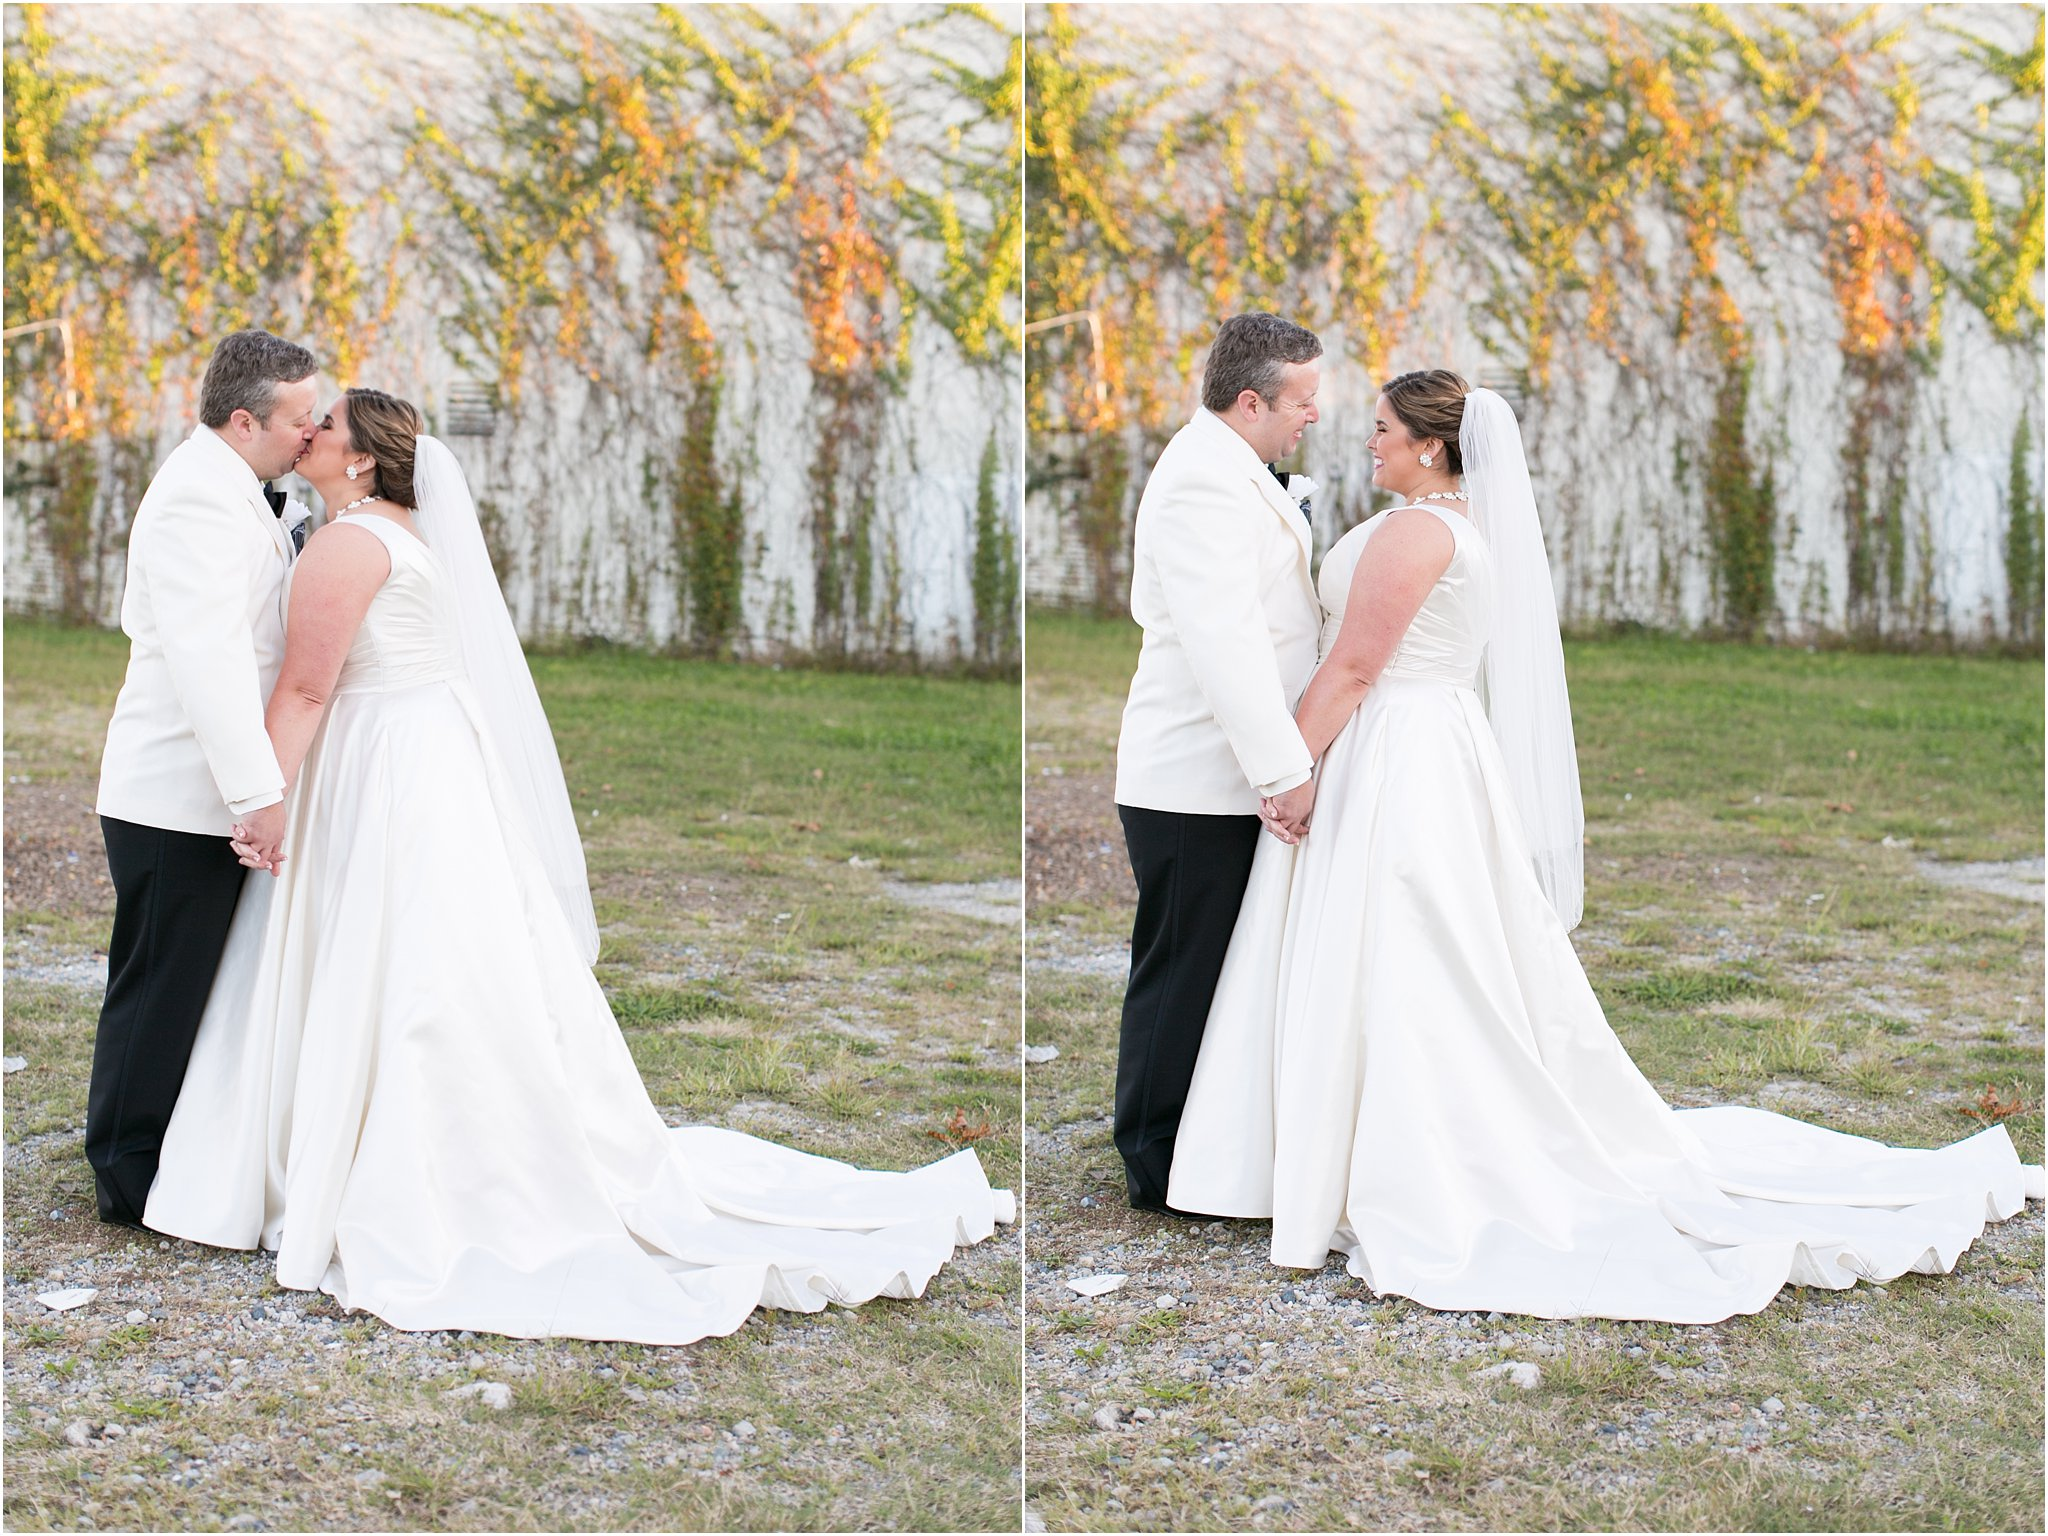 va_jessica_ryan_photography_virginia_wedding_norfolk_harrison_opera_house_norfolk_arts_district_portraits_3828